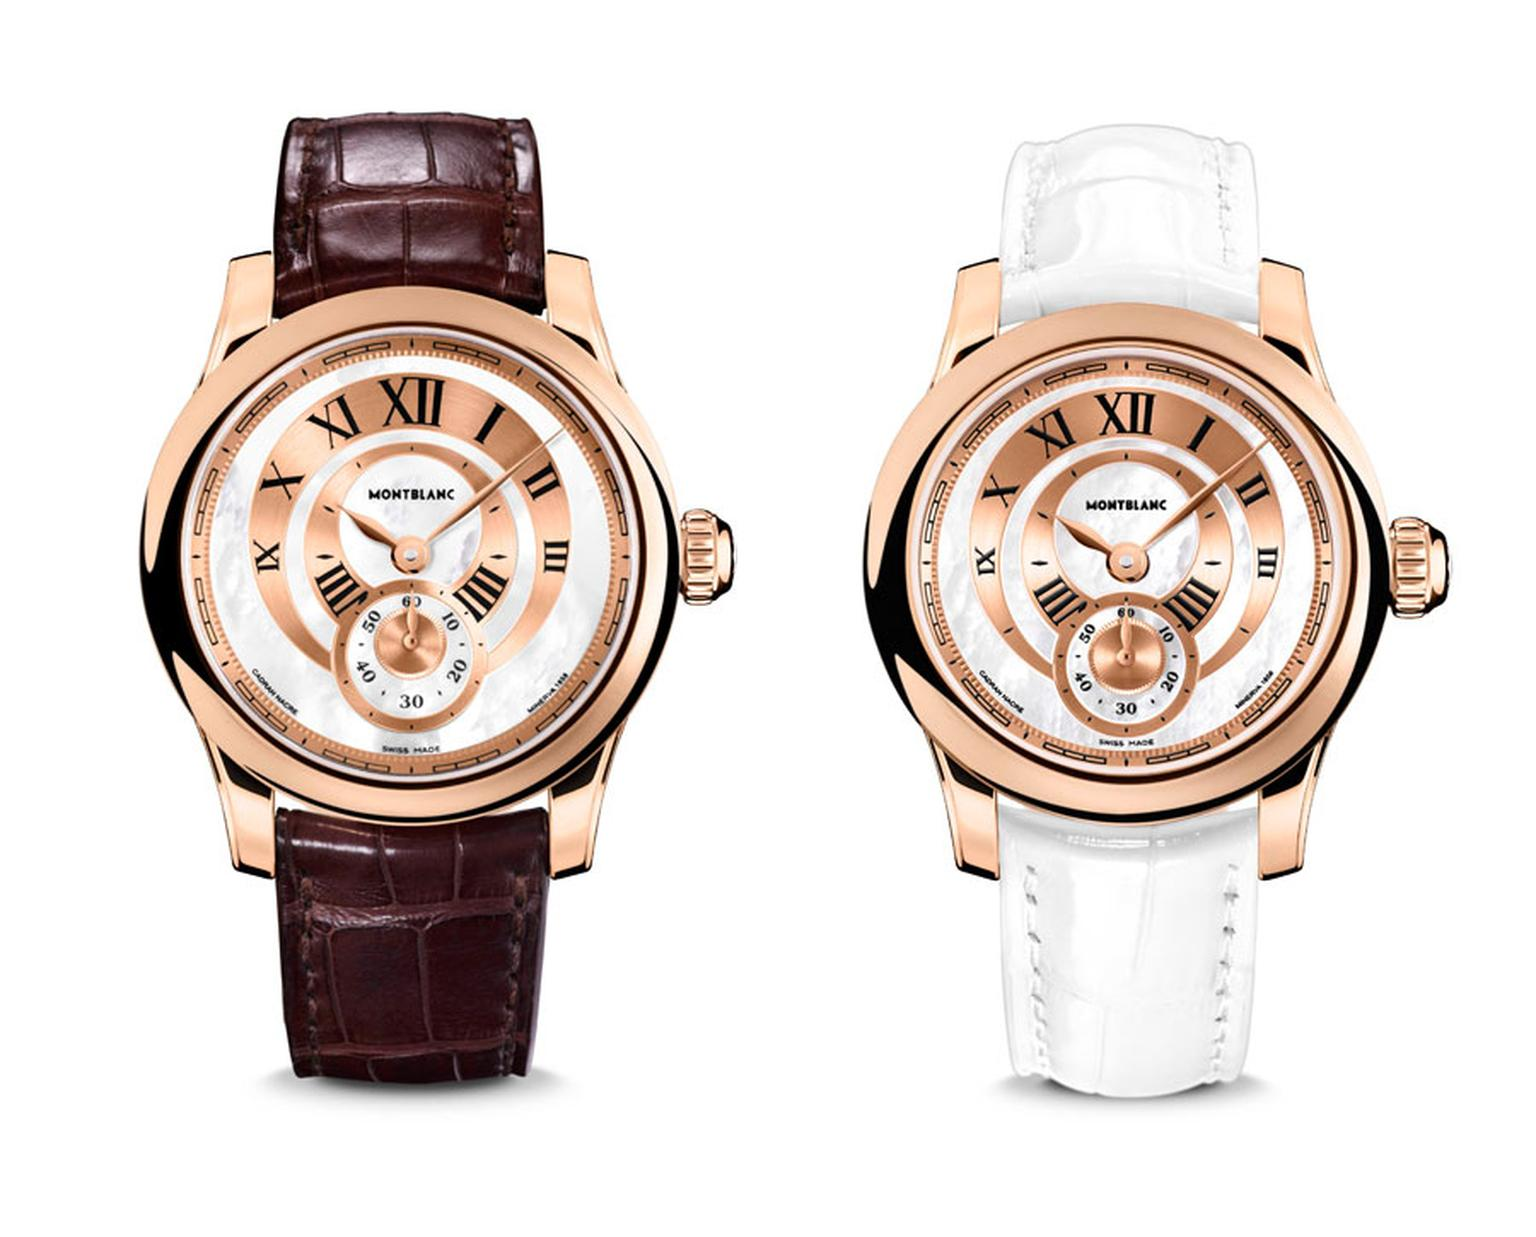 Montblanc-Villeret_Seconde-Authentique-pair-front-shot-_Low